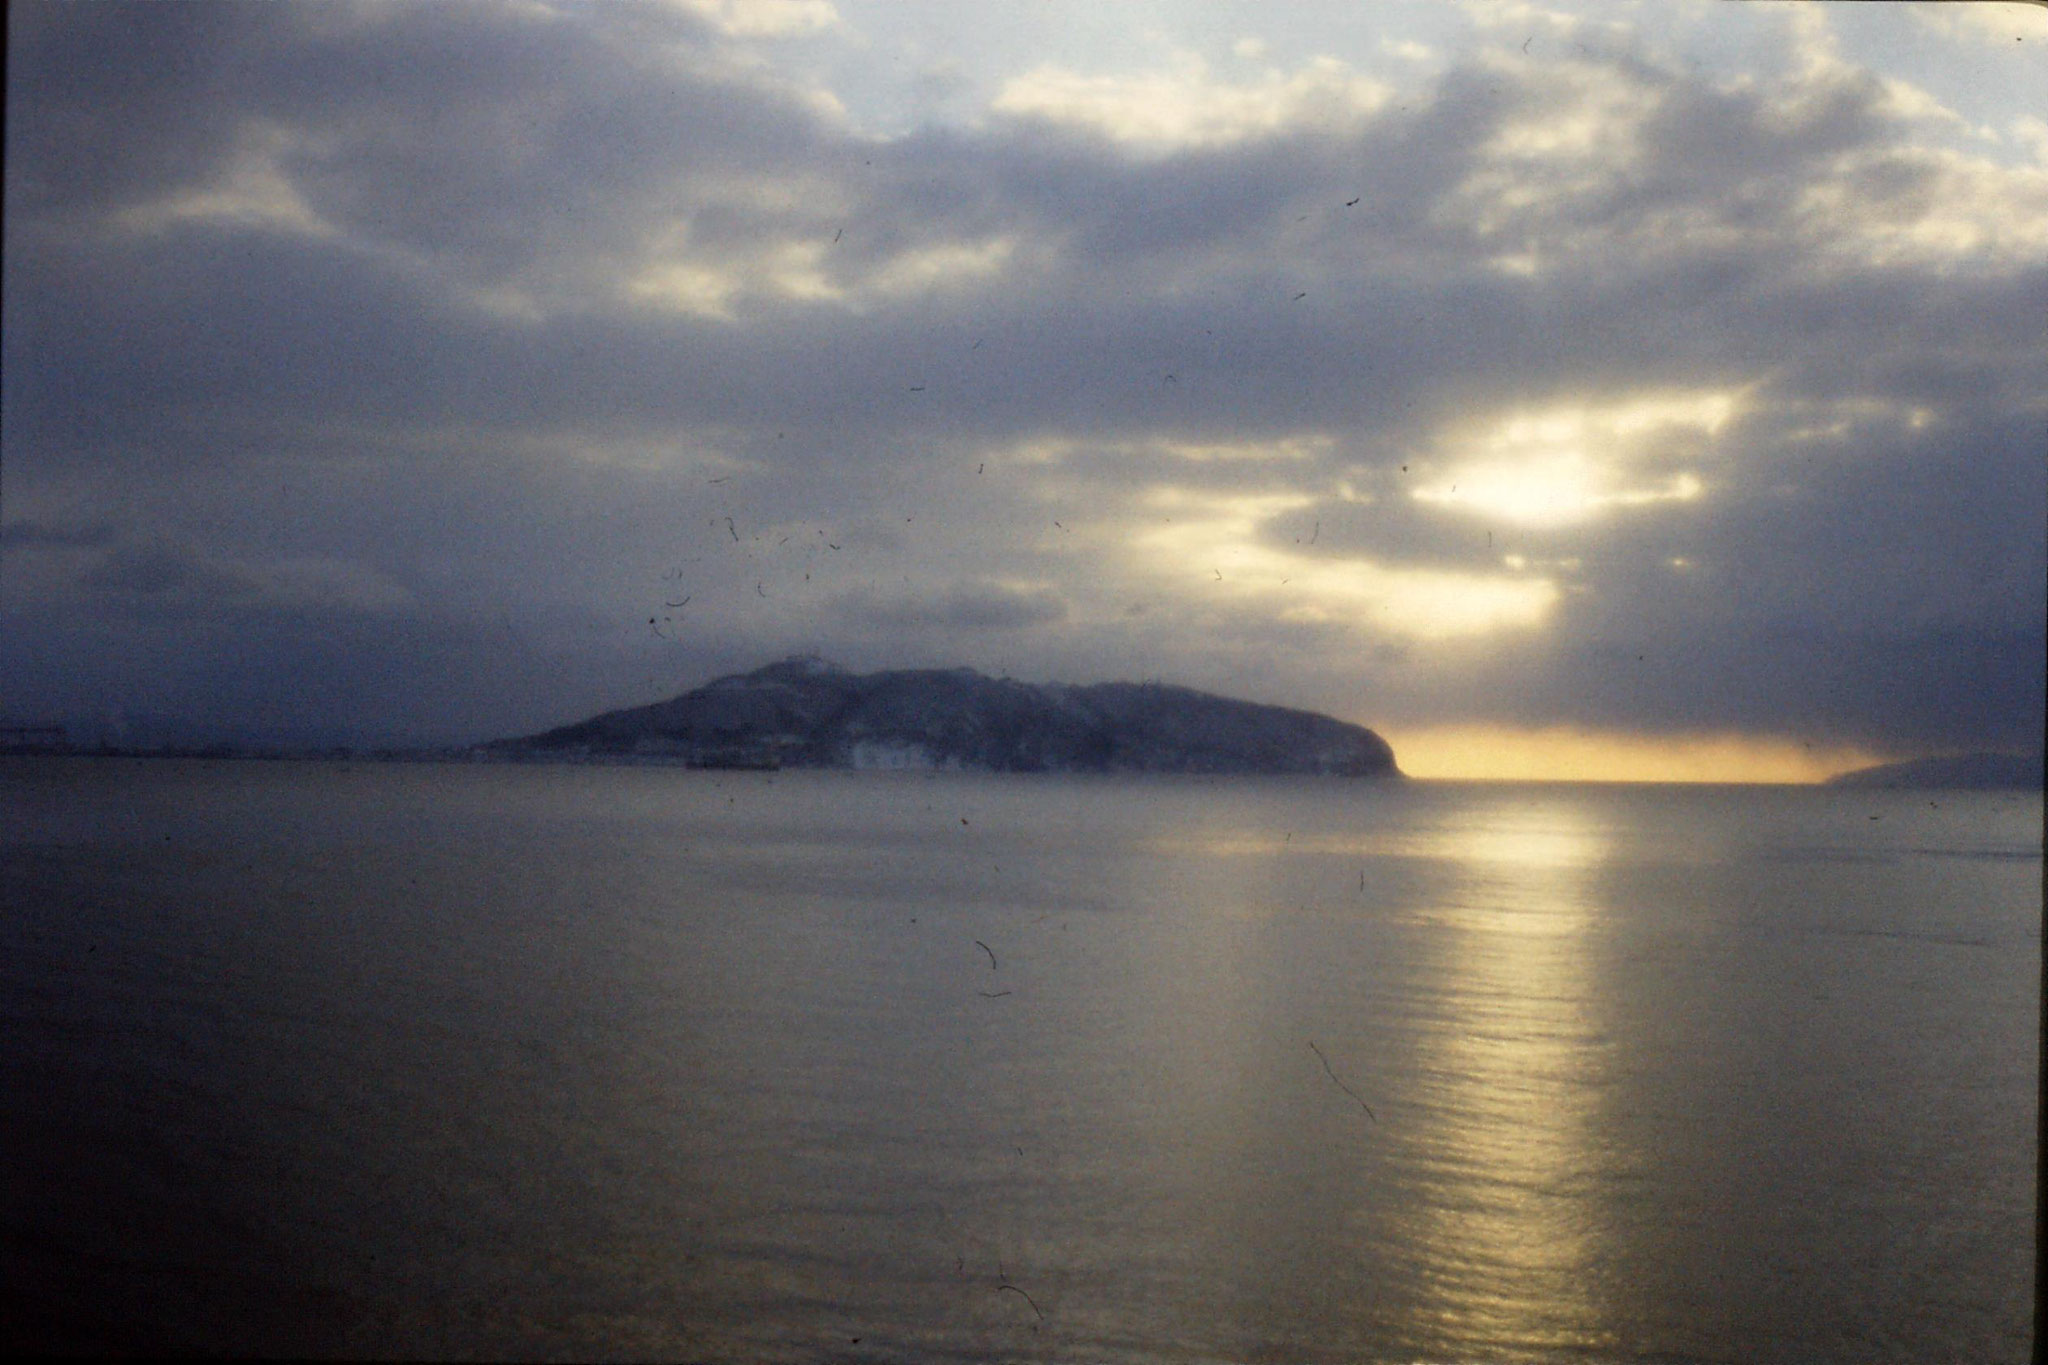 16/1/1989: 28: sunrise leaving Hakodate